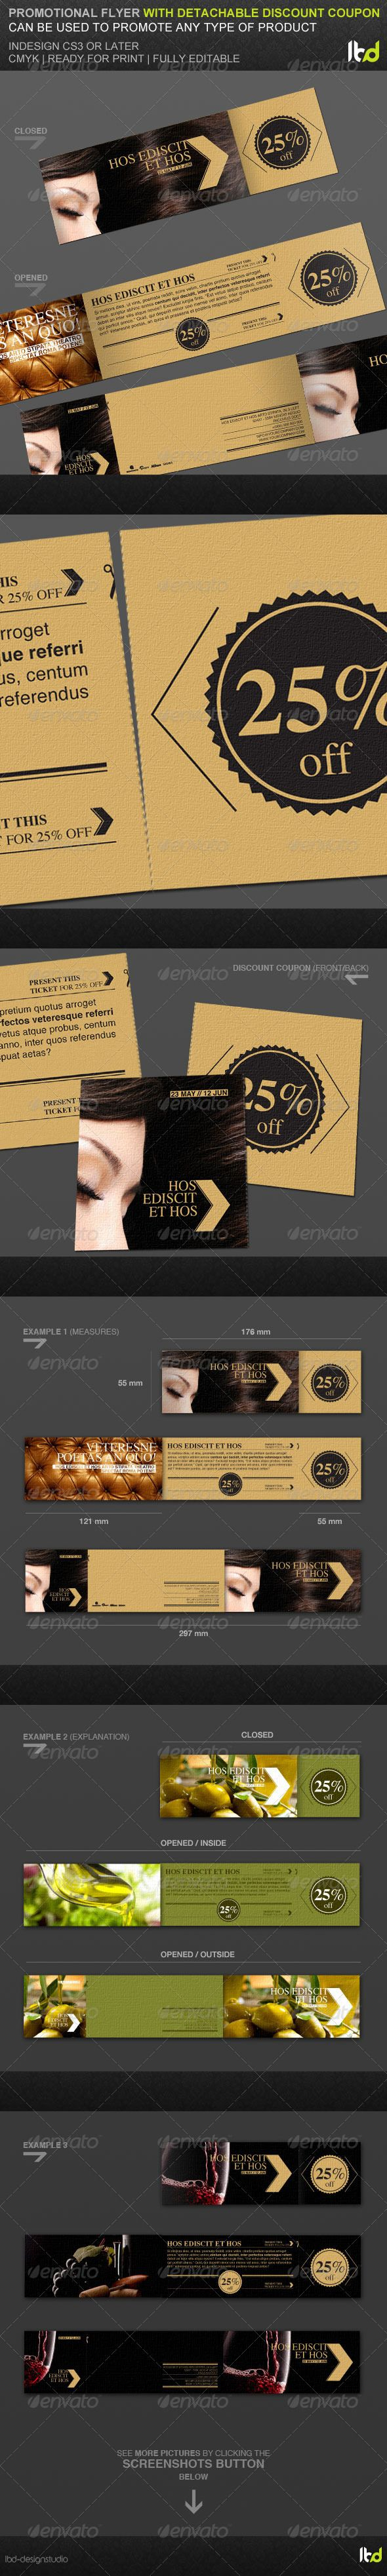 Promotional Flyer With Detachable Discount Coupon - Miscellaneous Events